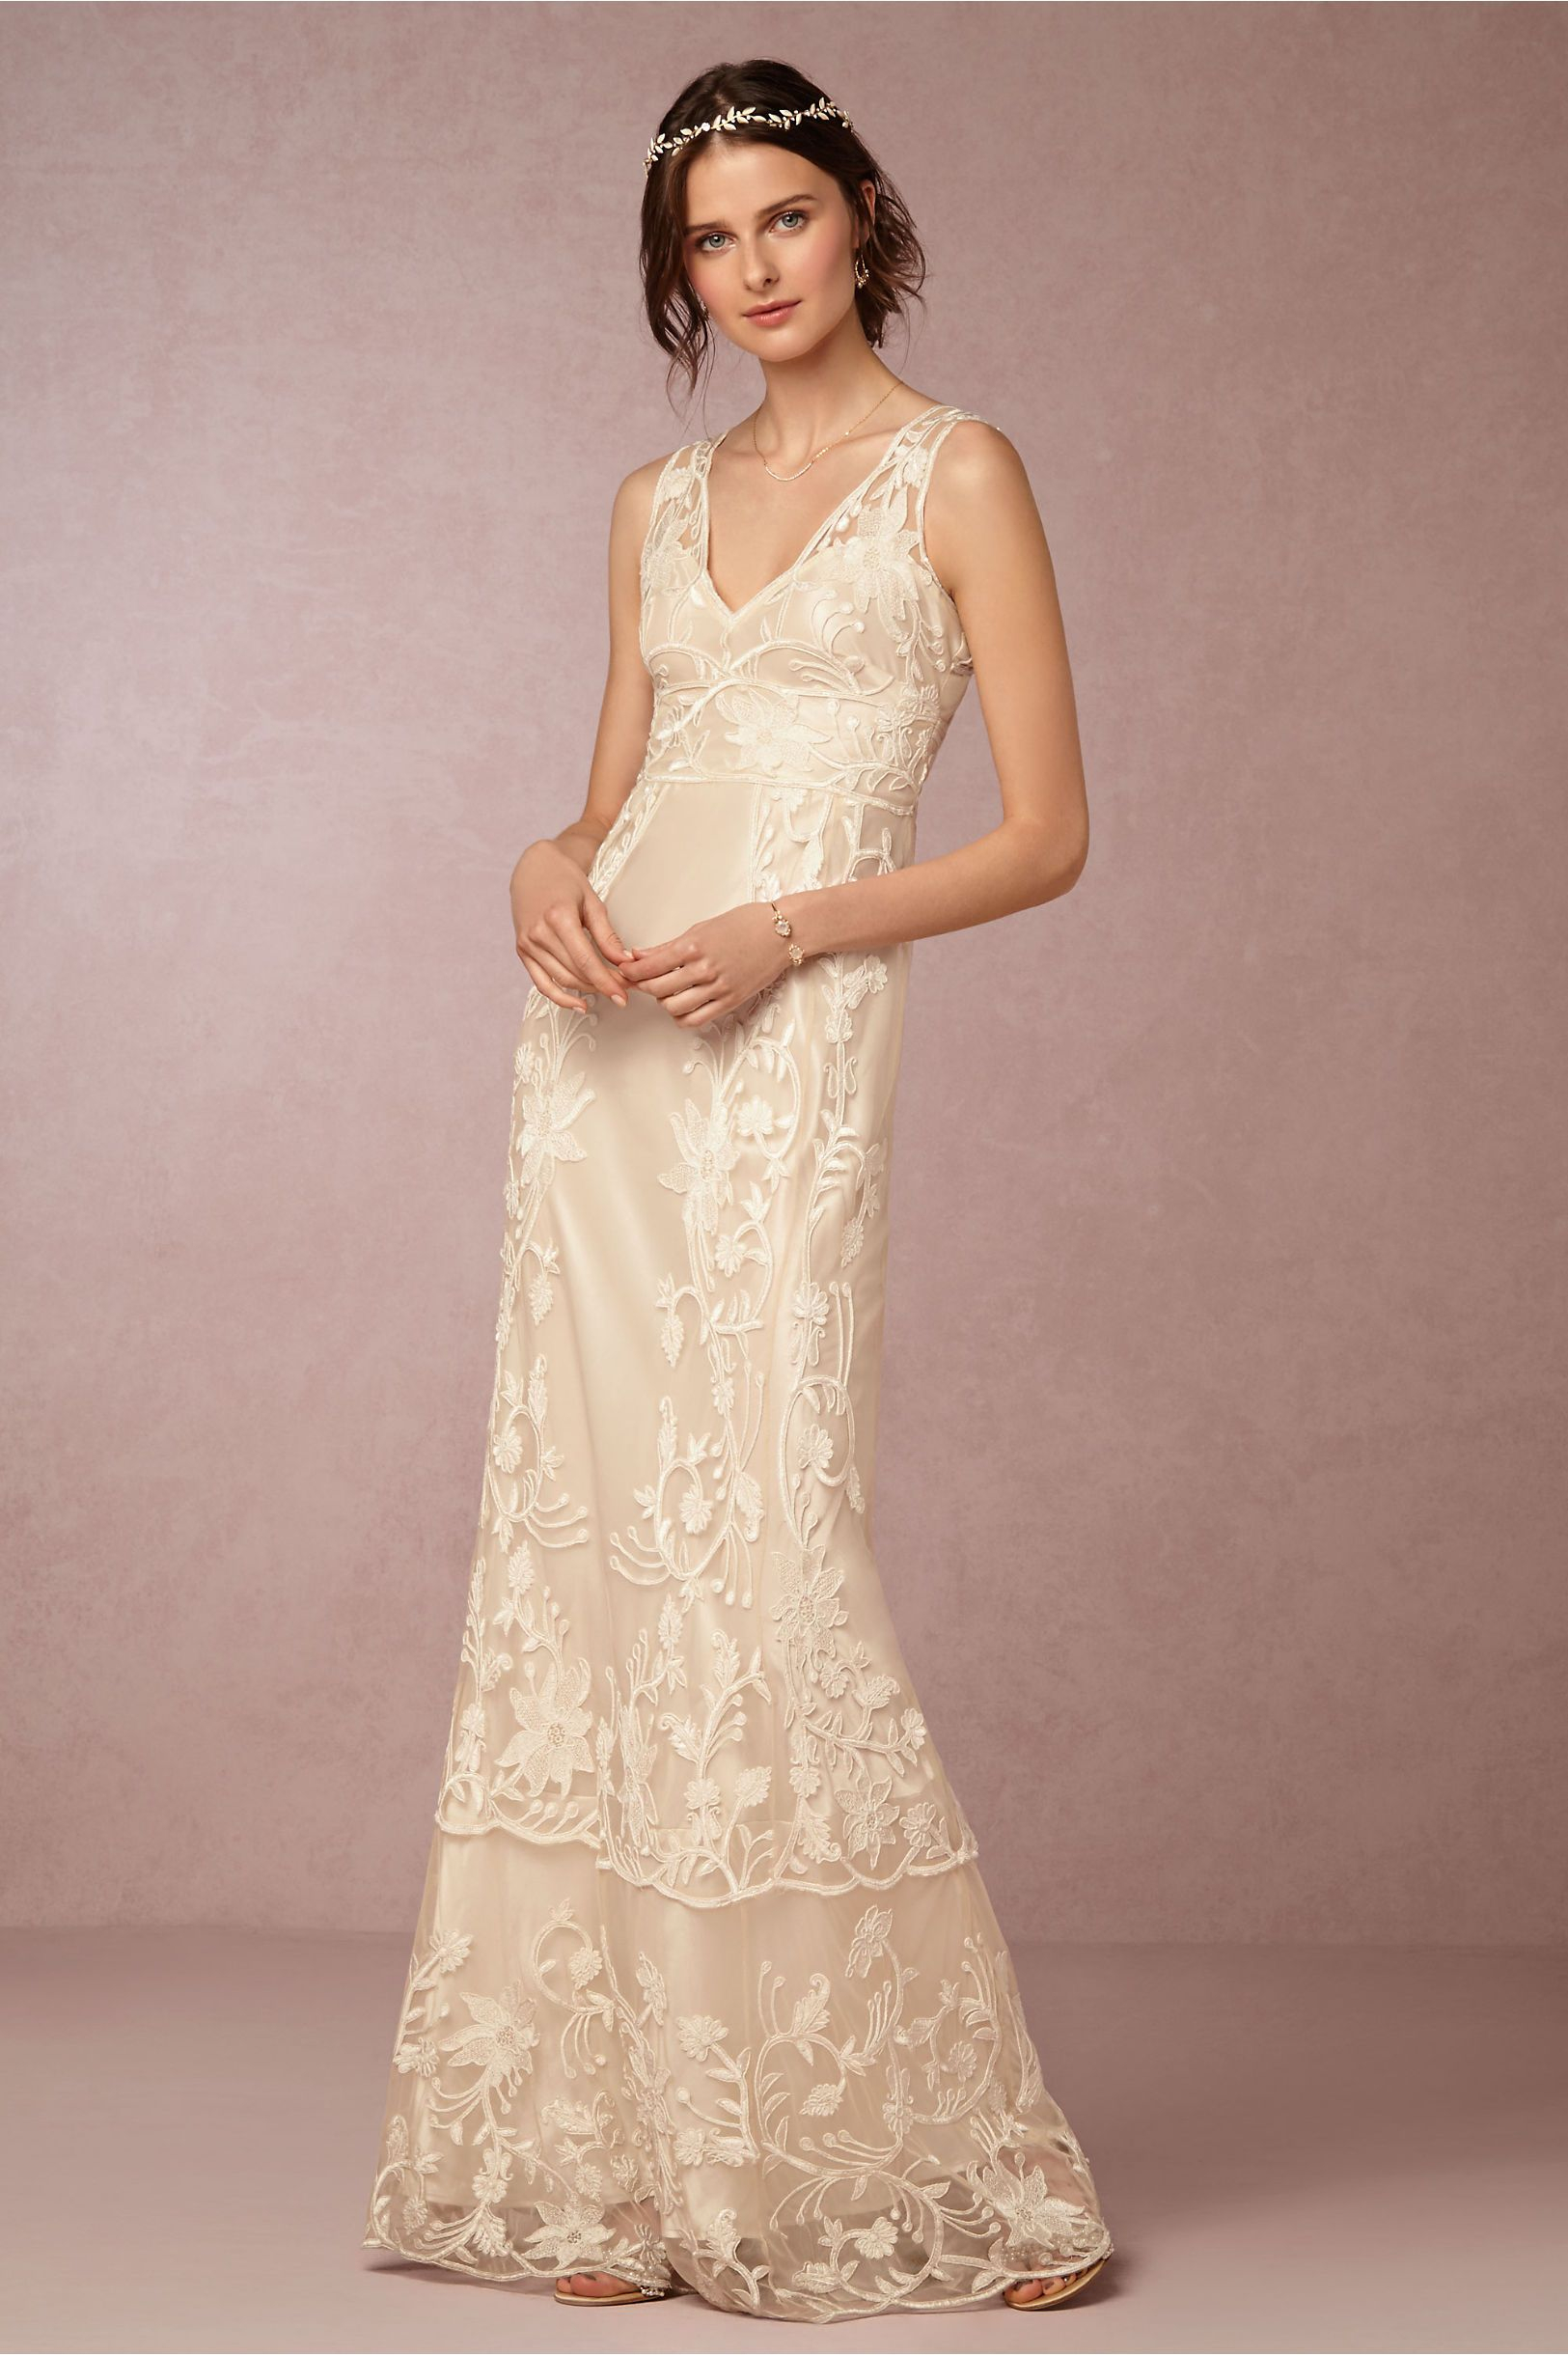 Embroidered Lace Wedding Dress Perfect For A Backyard Wedding Our pertaining to Backyard Wedding Dress Ideas